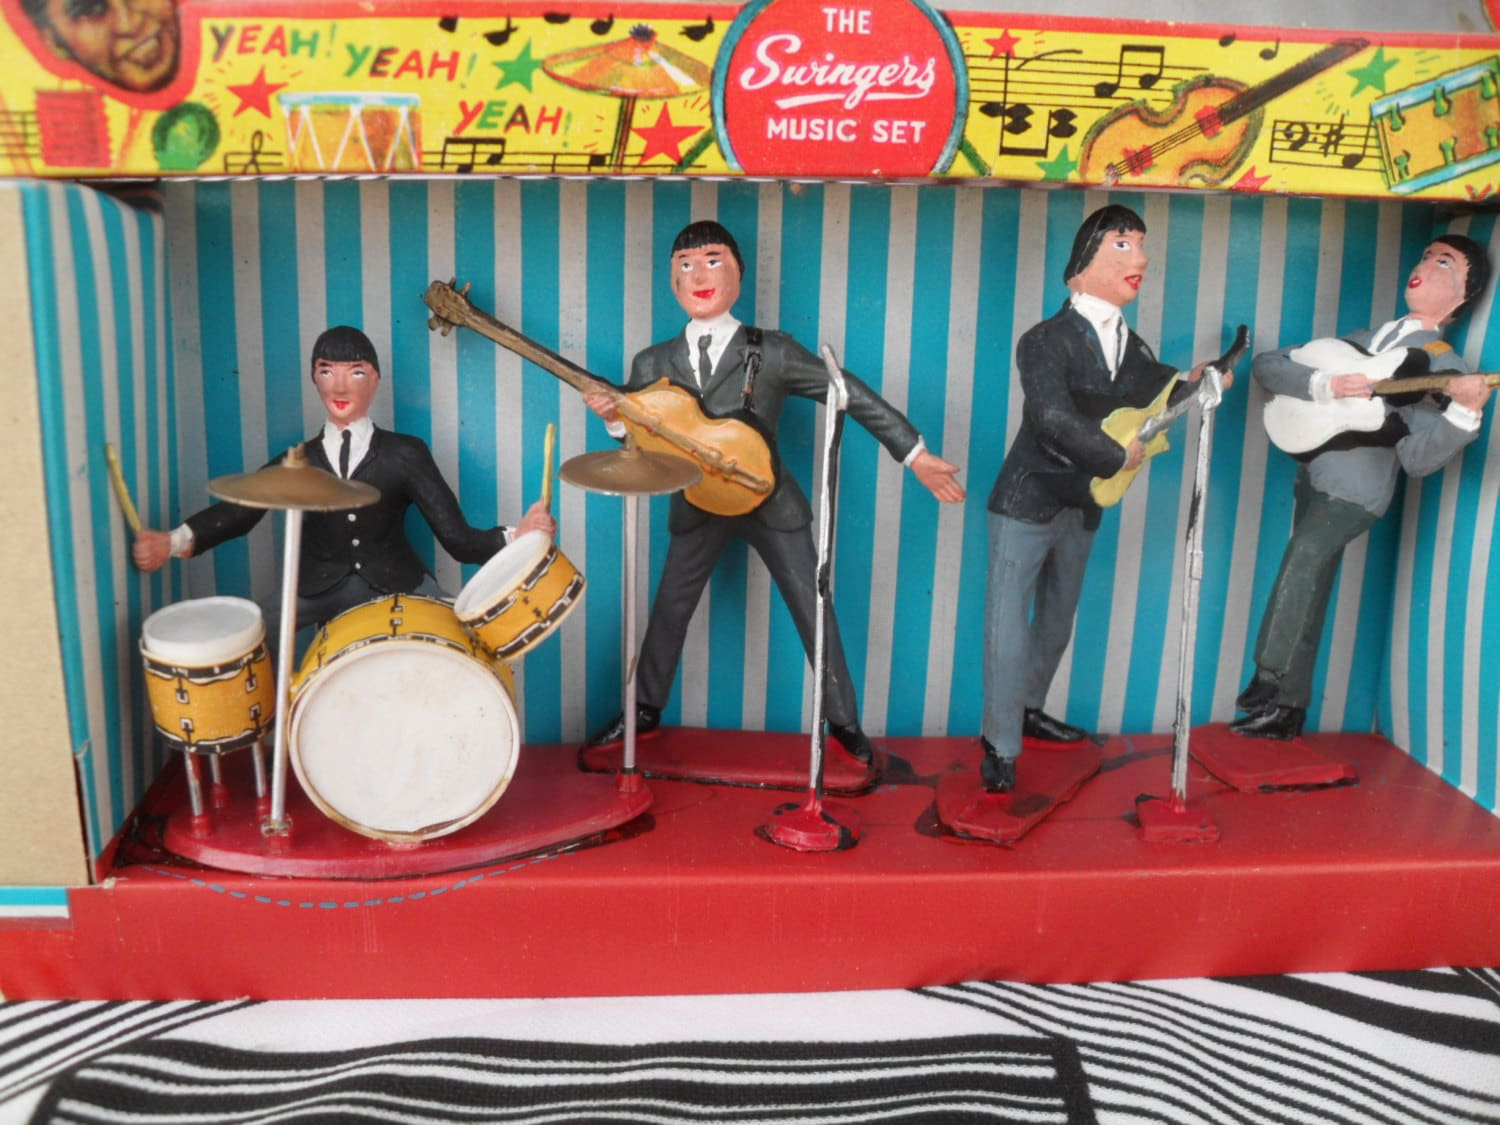 Vintage Toys From The 60s : Vintage beatles swingers set miniature rock n roll music toy